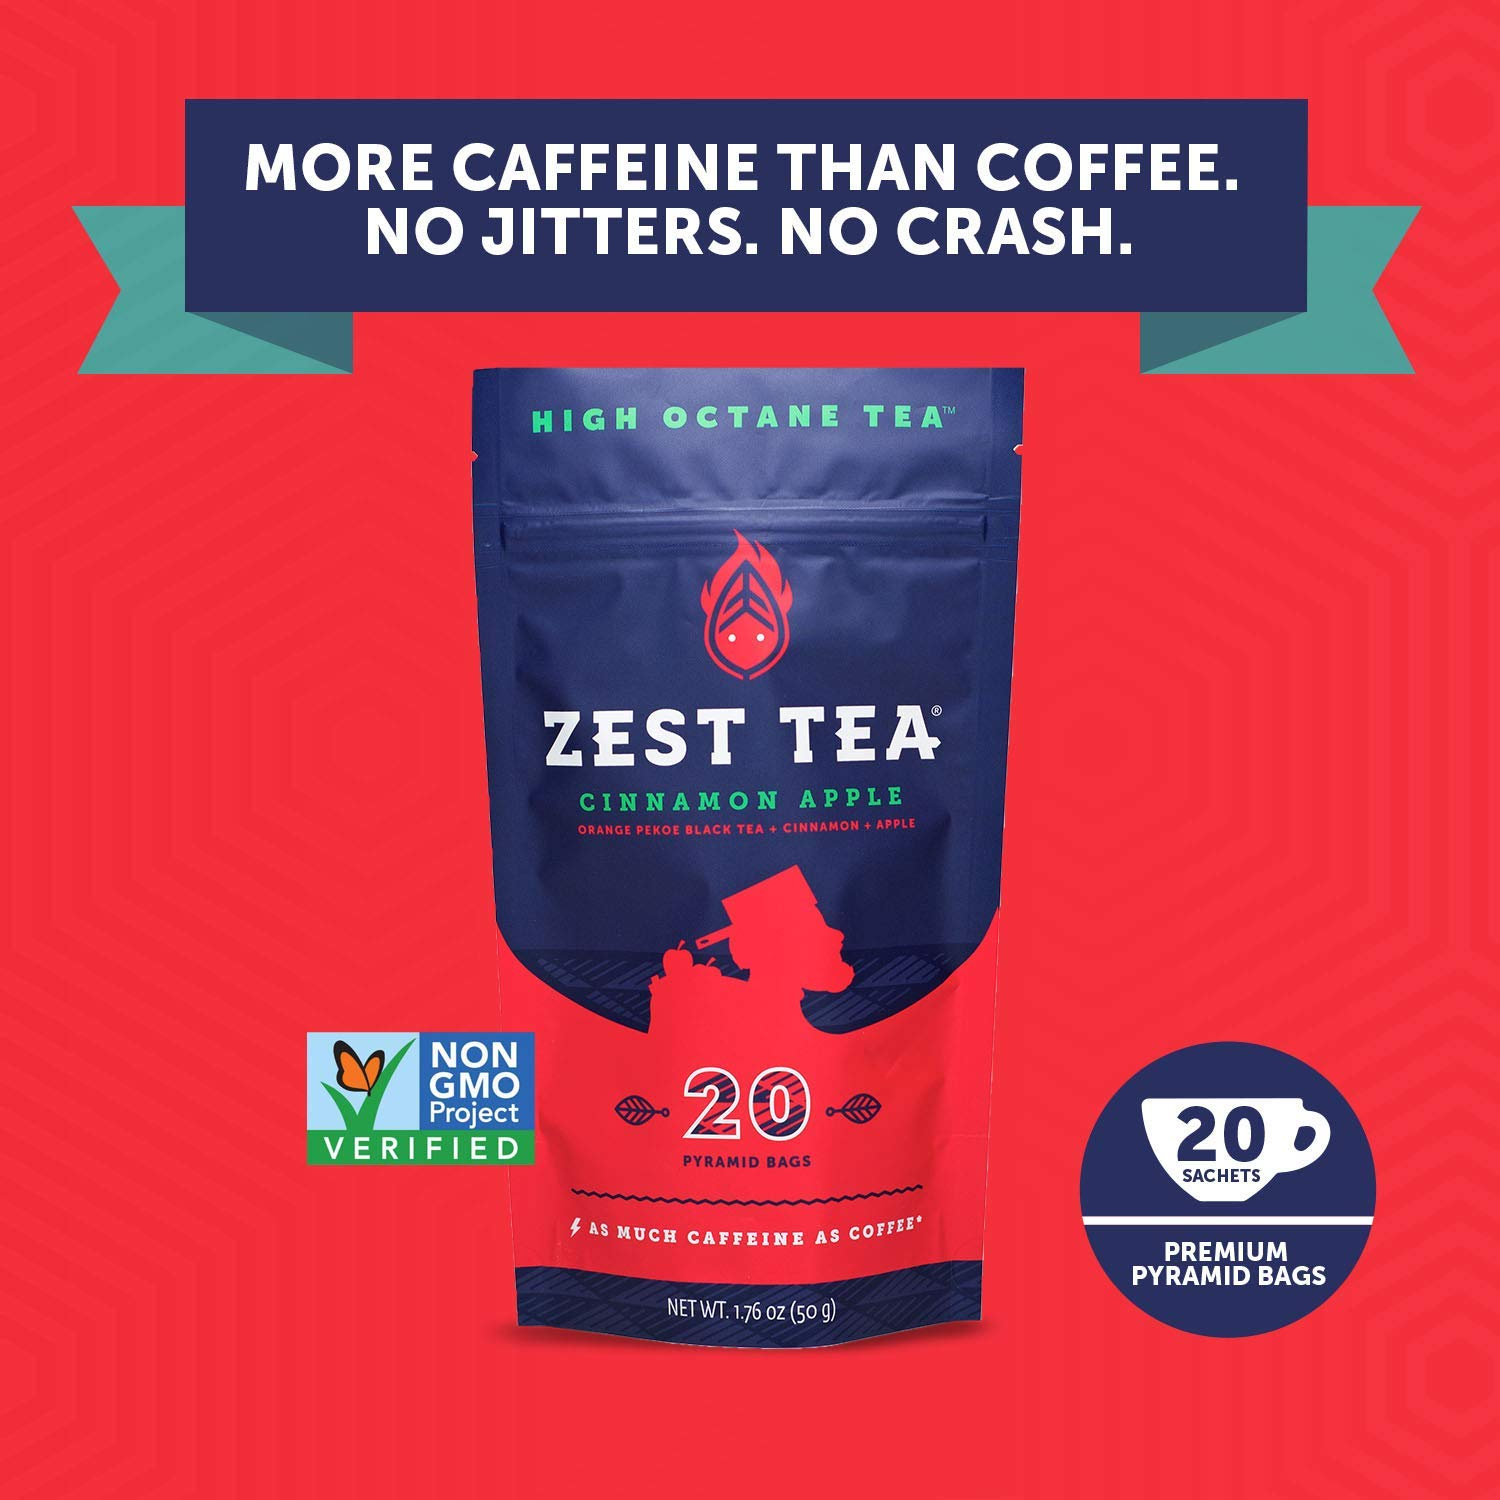 Traditional Coffee Substitute, Perfect for Keto, 150 mg Caffeine per Serving, 20 Sachets